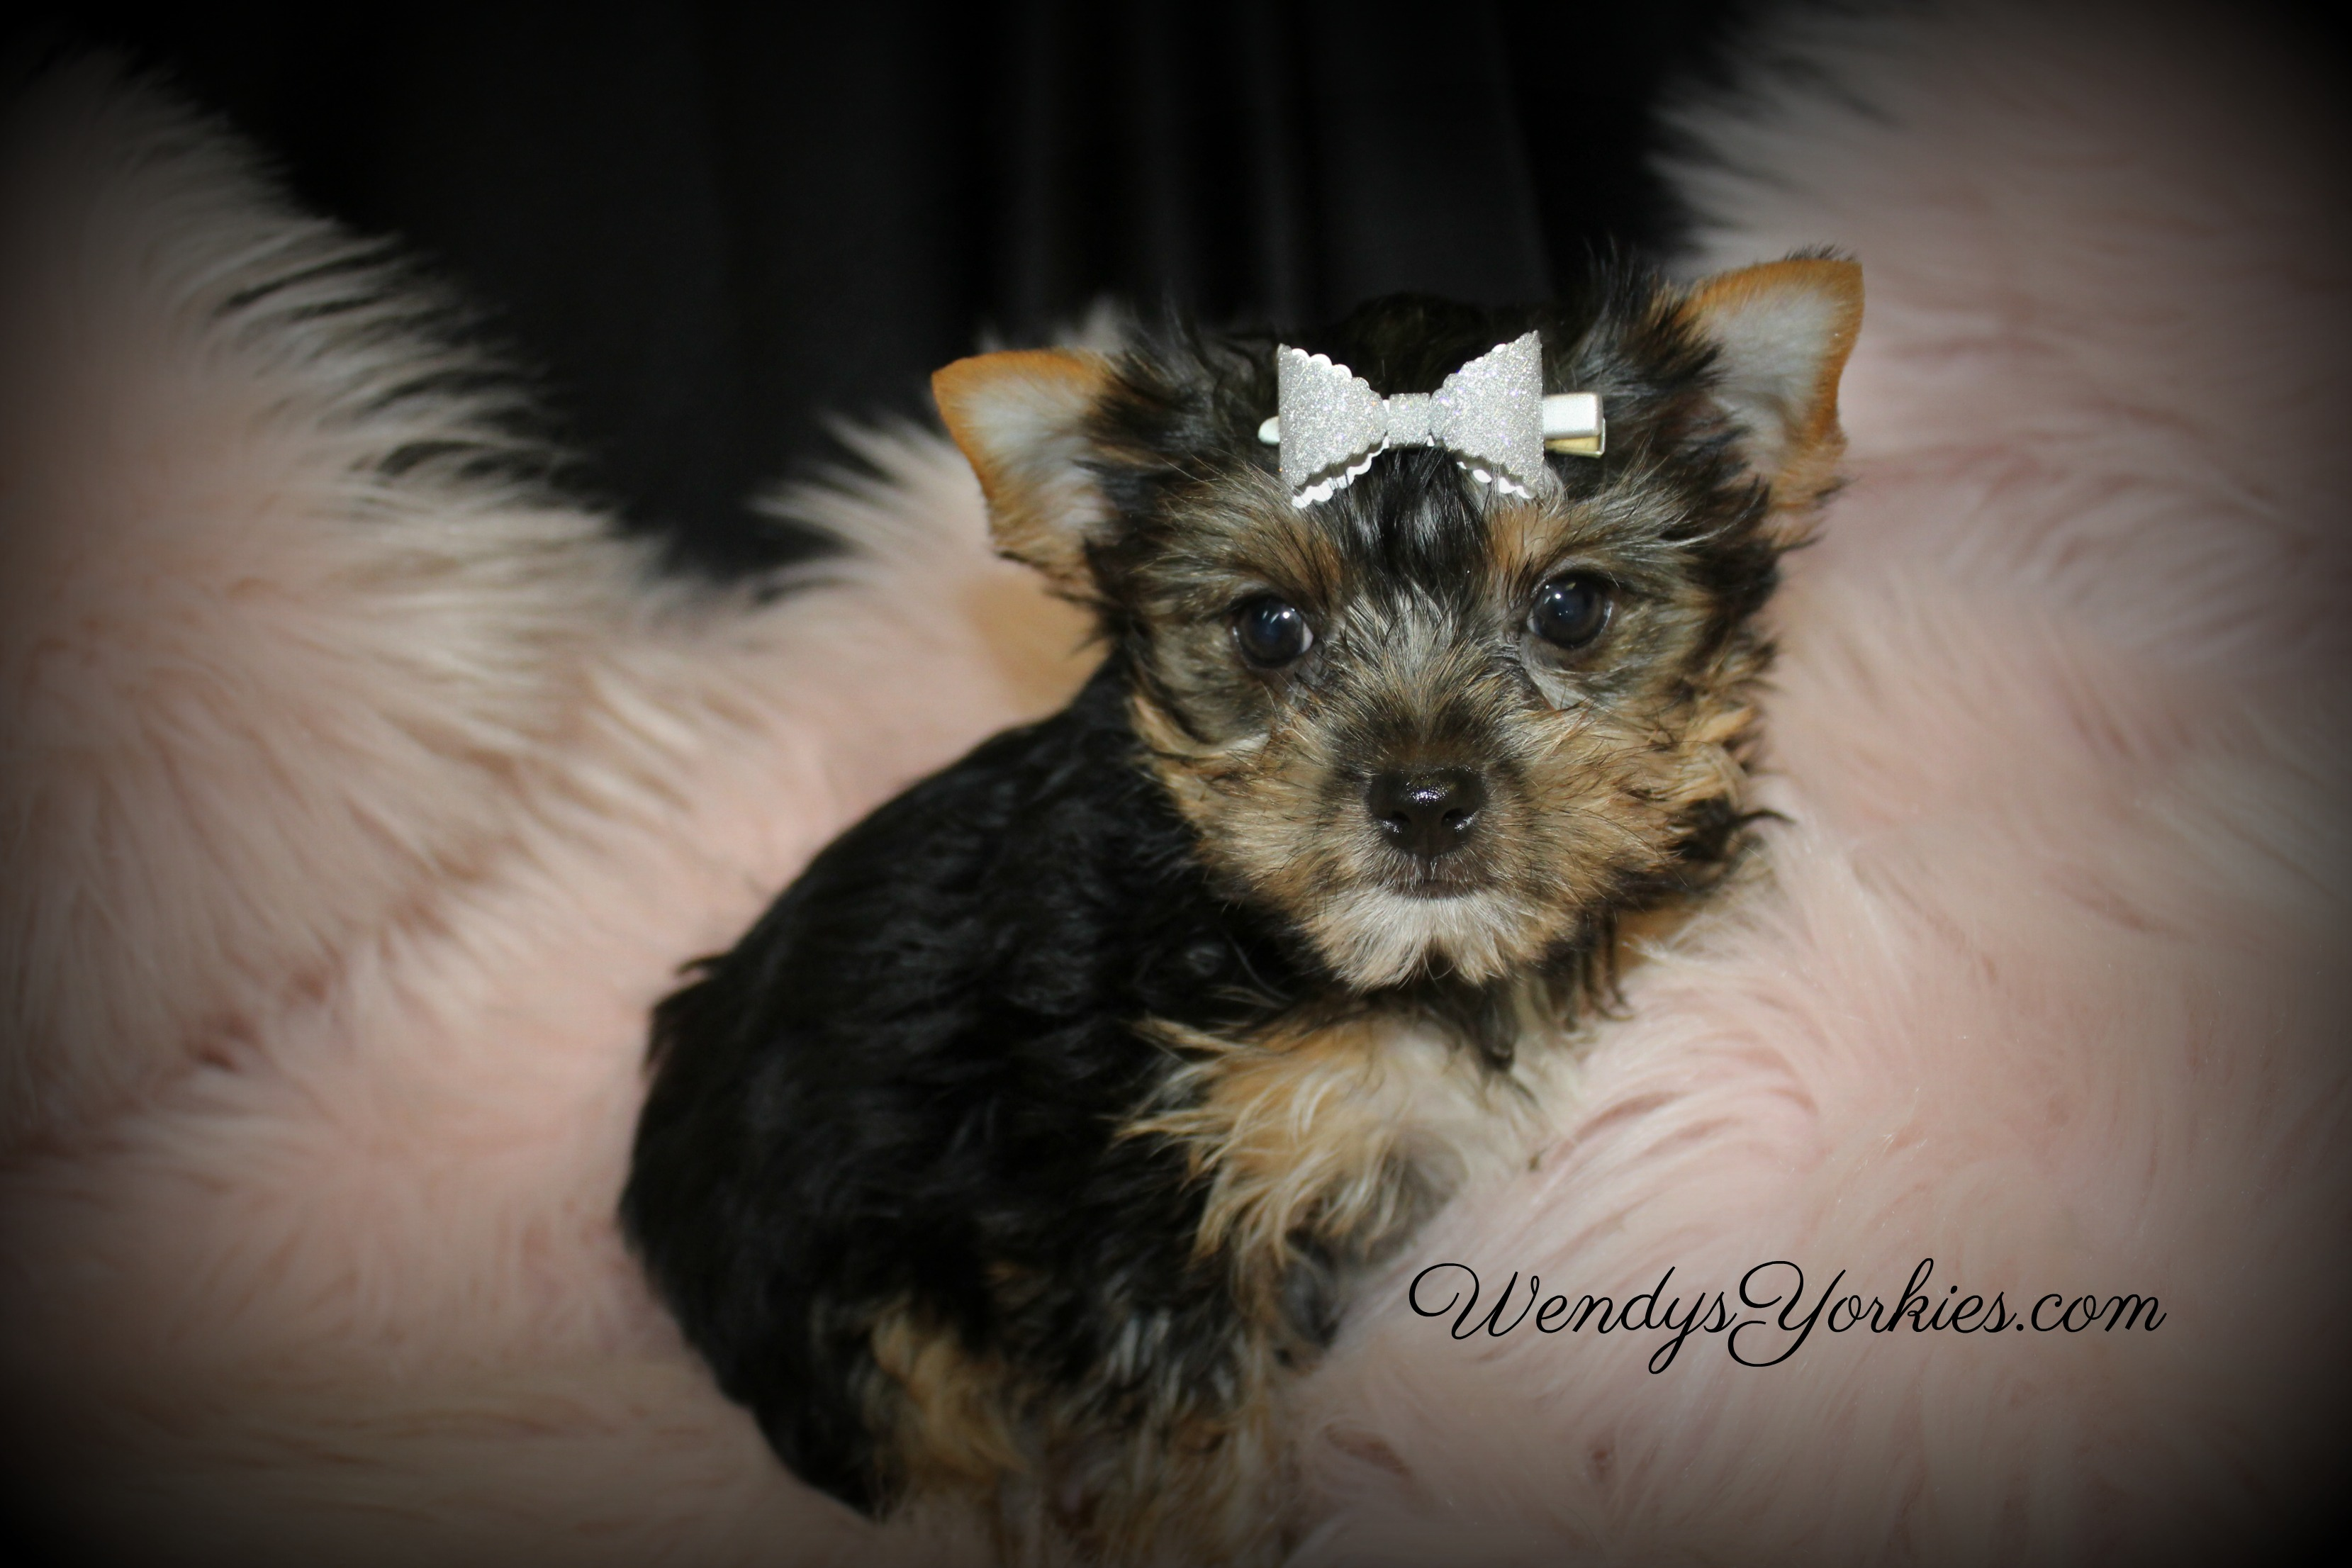 Yorkie puppy for sale in Texas, WendysYorkies.com, Loulou f3